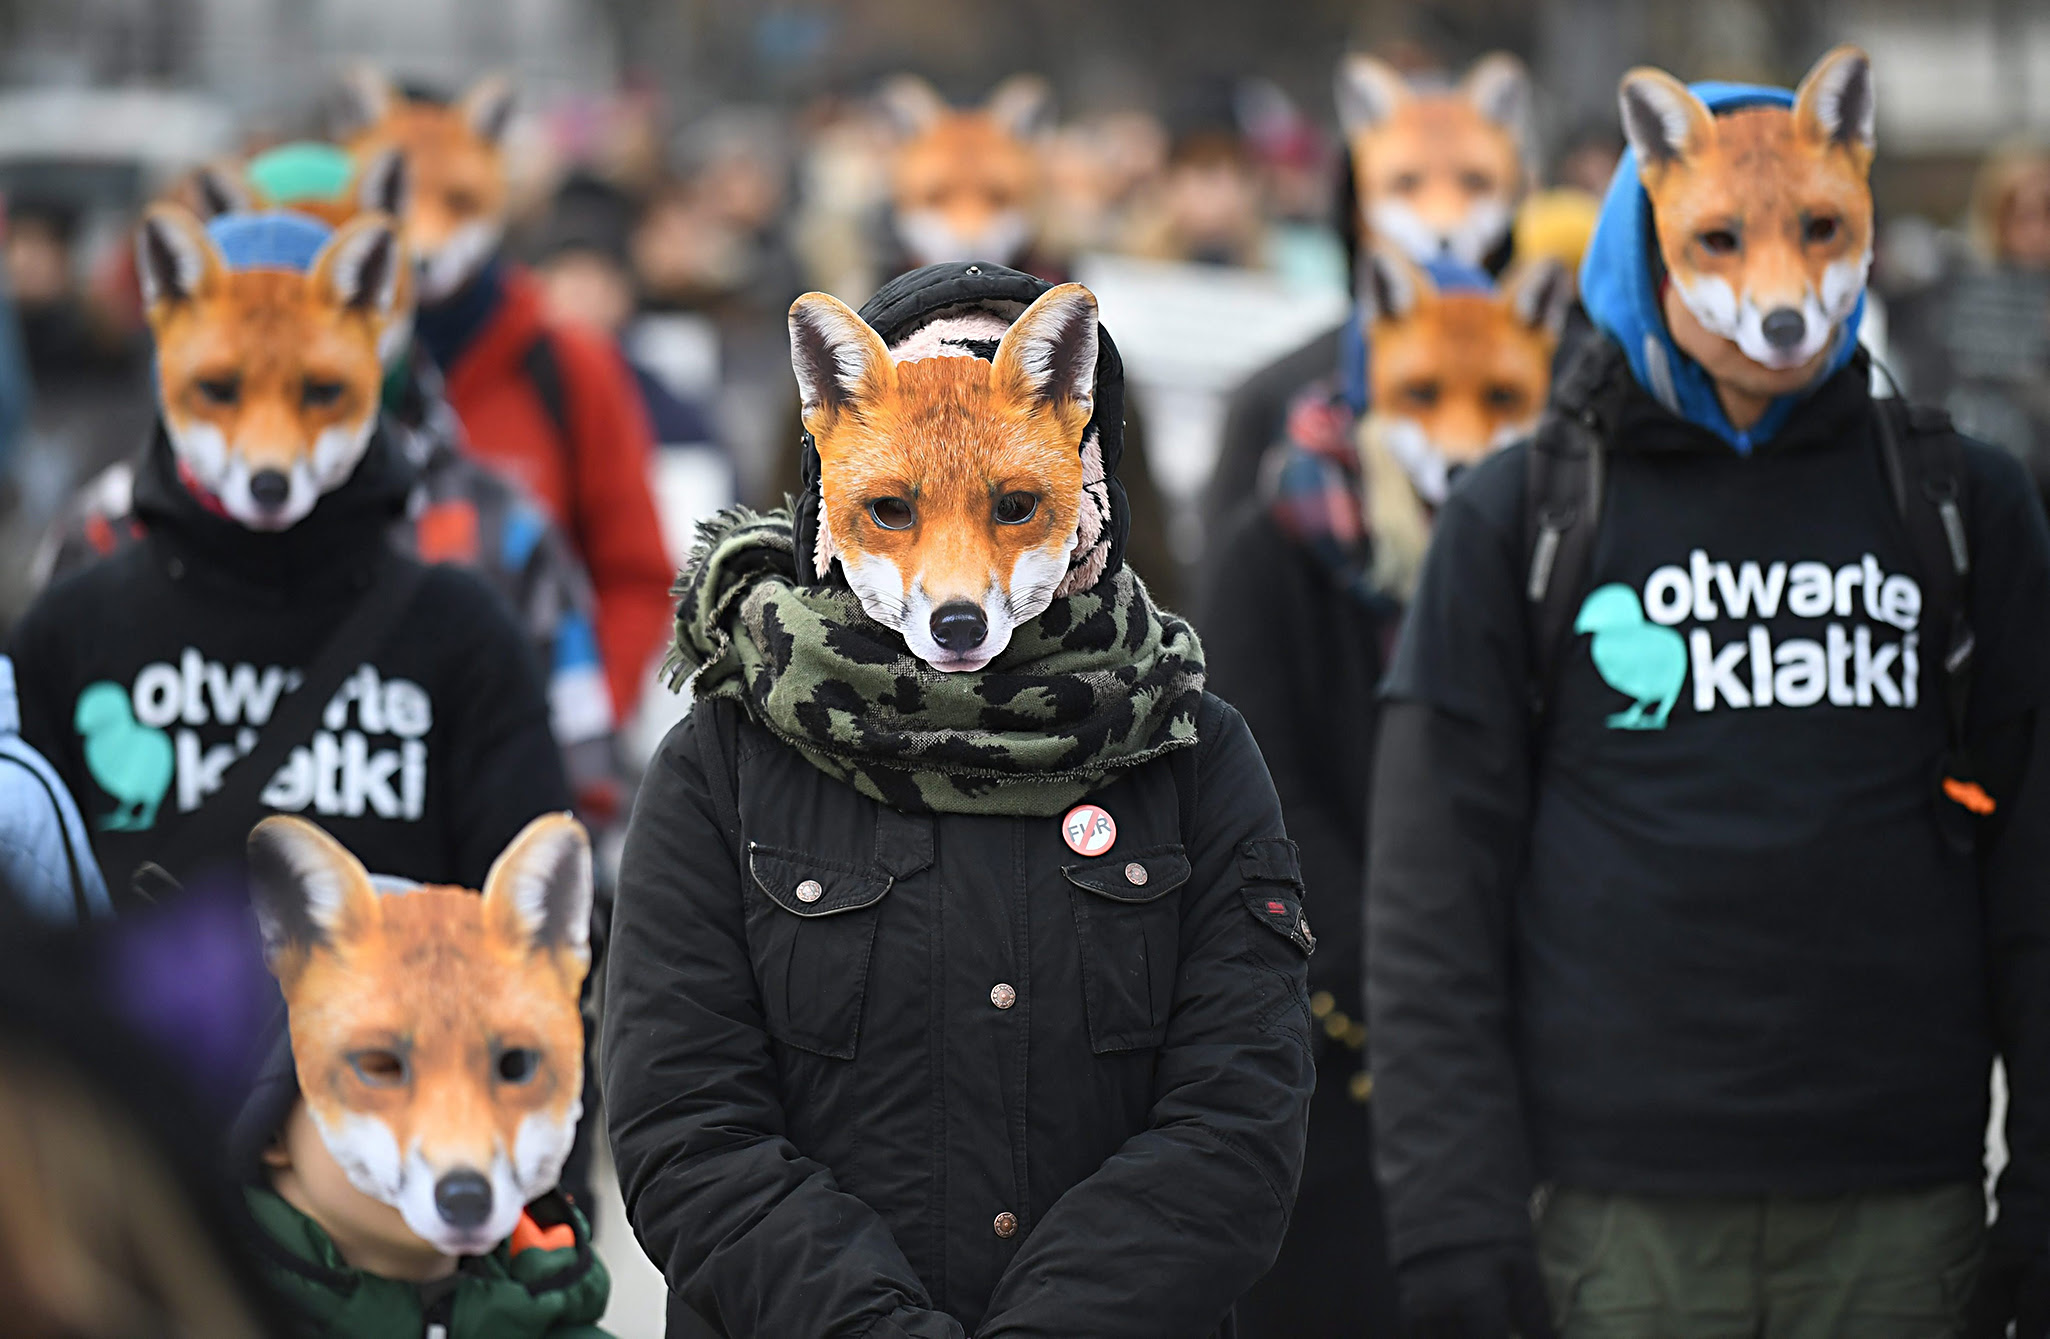 People wearing fox masks take part in the 'Day without fur' demonstration near the Polish Sejm headquaters in Warsaw, Poland, 15 November 2016. The demonstrators oppose breeding canine animals for gaining the fur. In this case the signatures for a petition were gathered and stored in the Chancellery of the Sejm. The slogan on the posters says: 'The victims of the Polish fur industry'.  EPA/BARTLOMIEJ ZBOROWSKI POLAND OUT